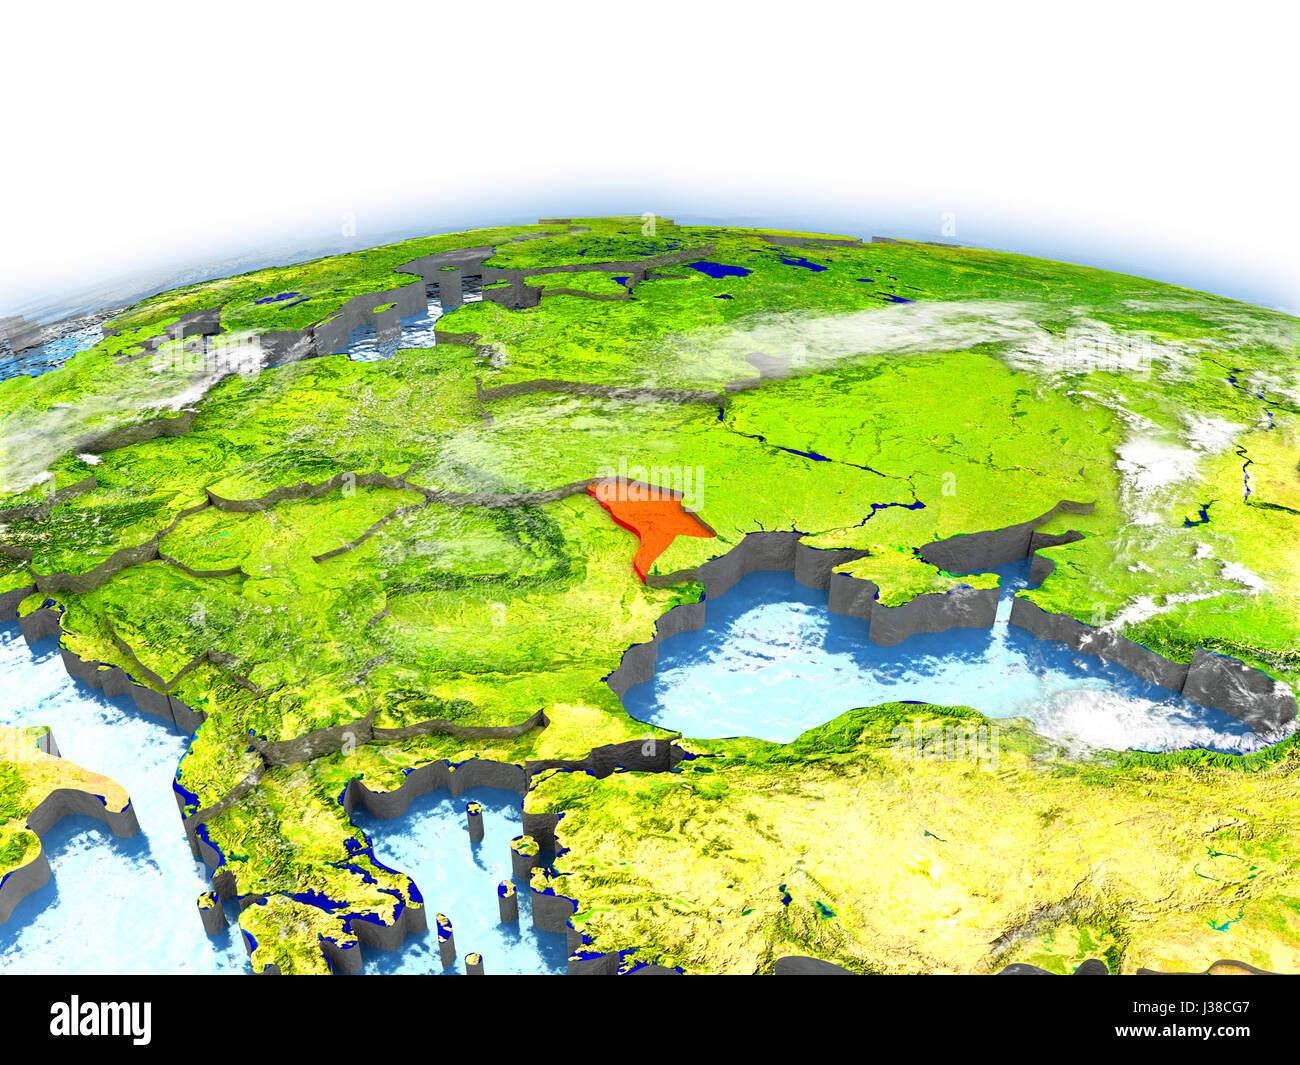 Country Of Moldova On Model Of Earth 3d Illustration Elements Of This  Image Furnished